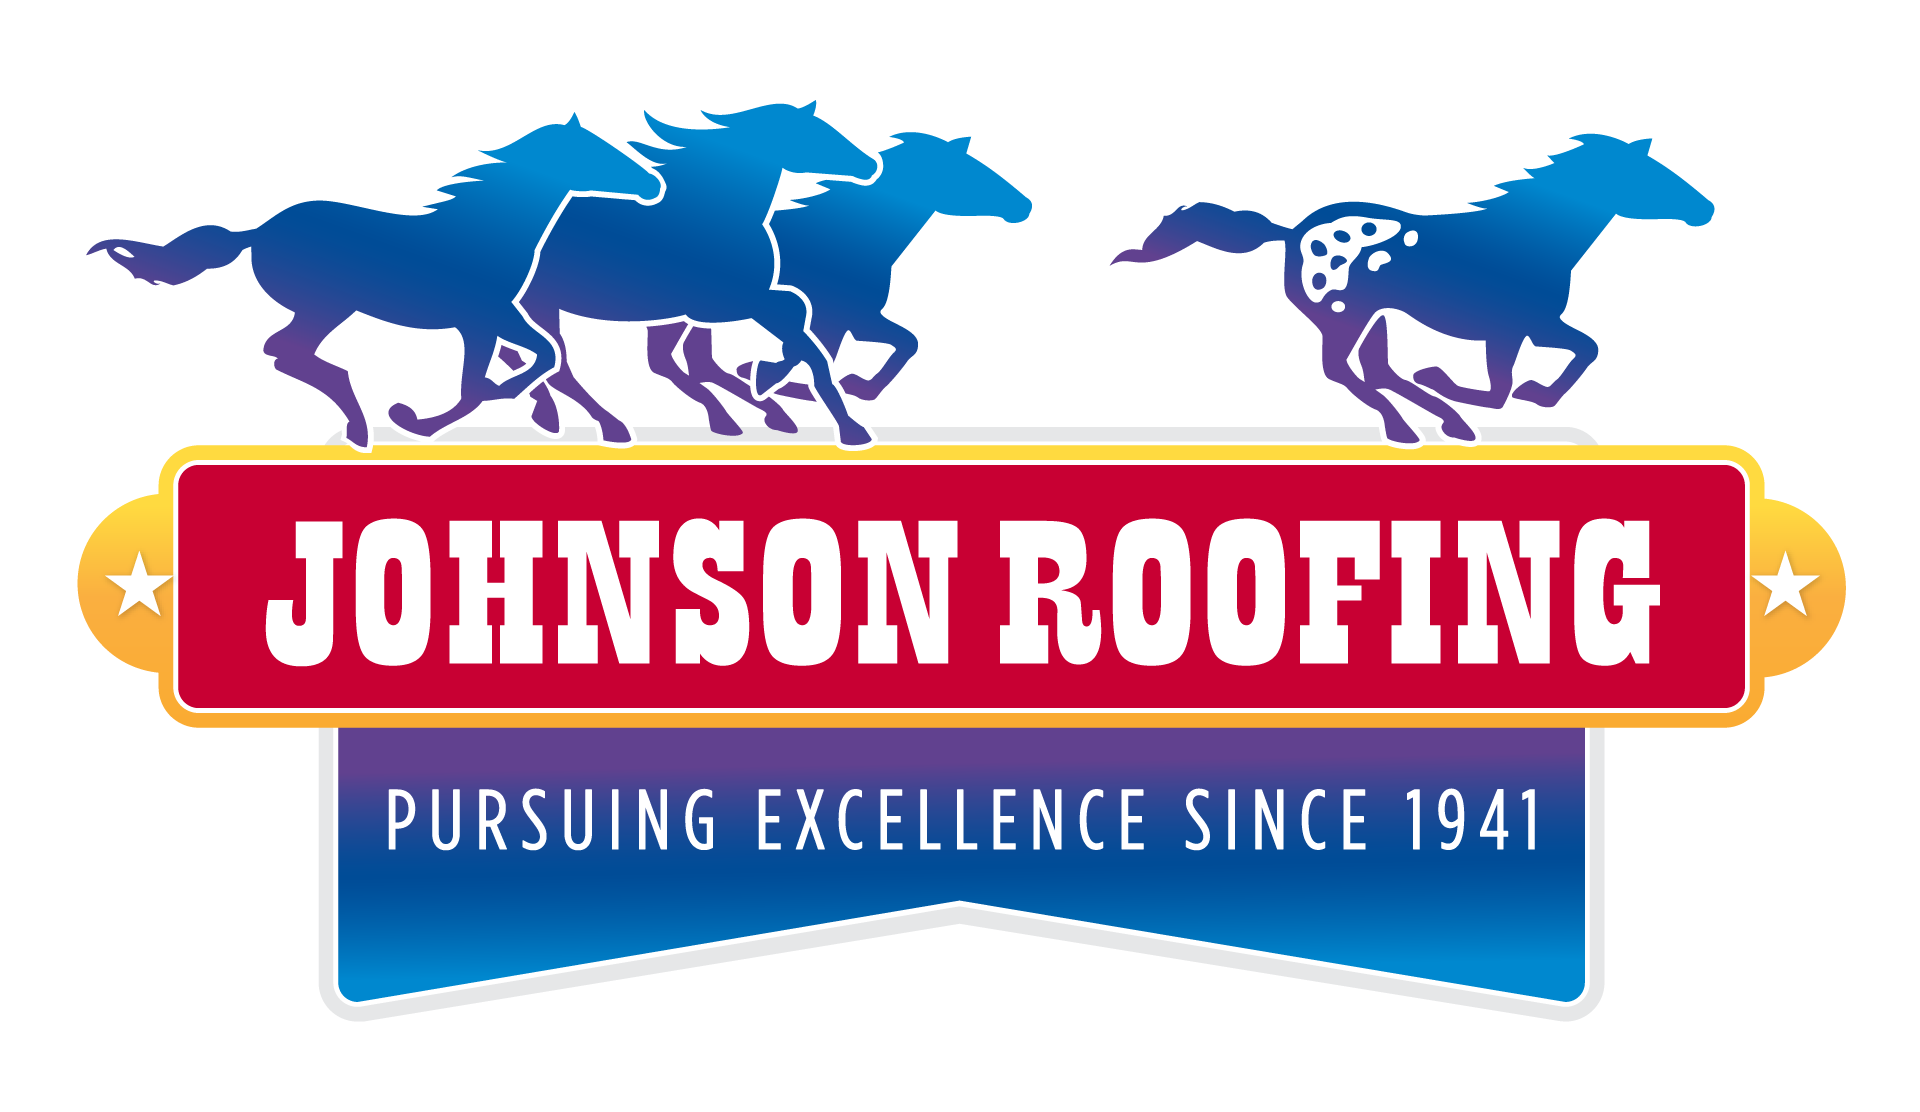 Johnson Roofing Home About